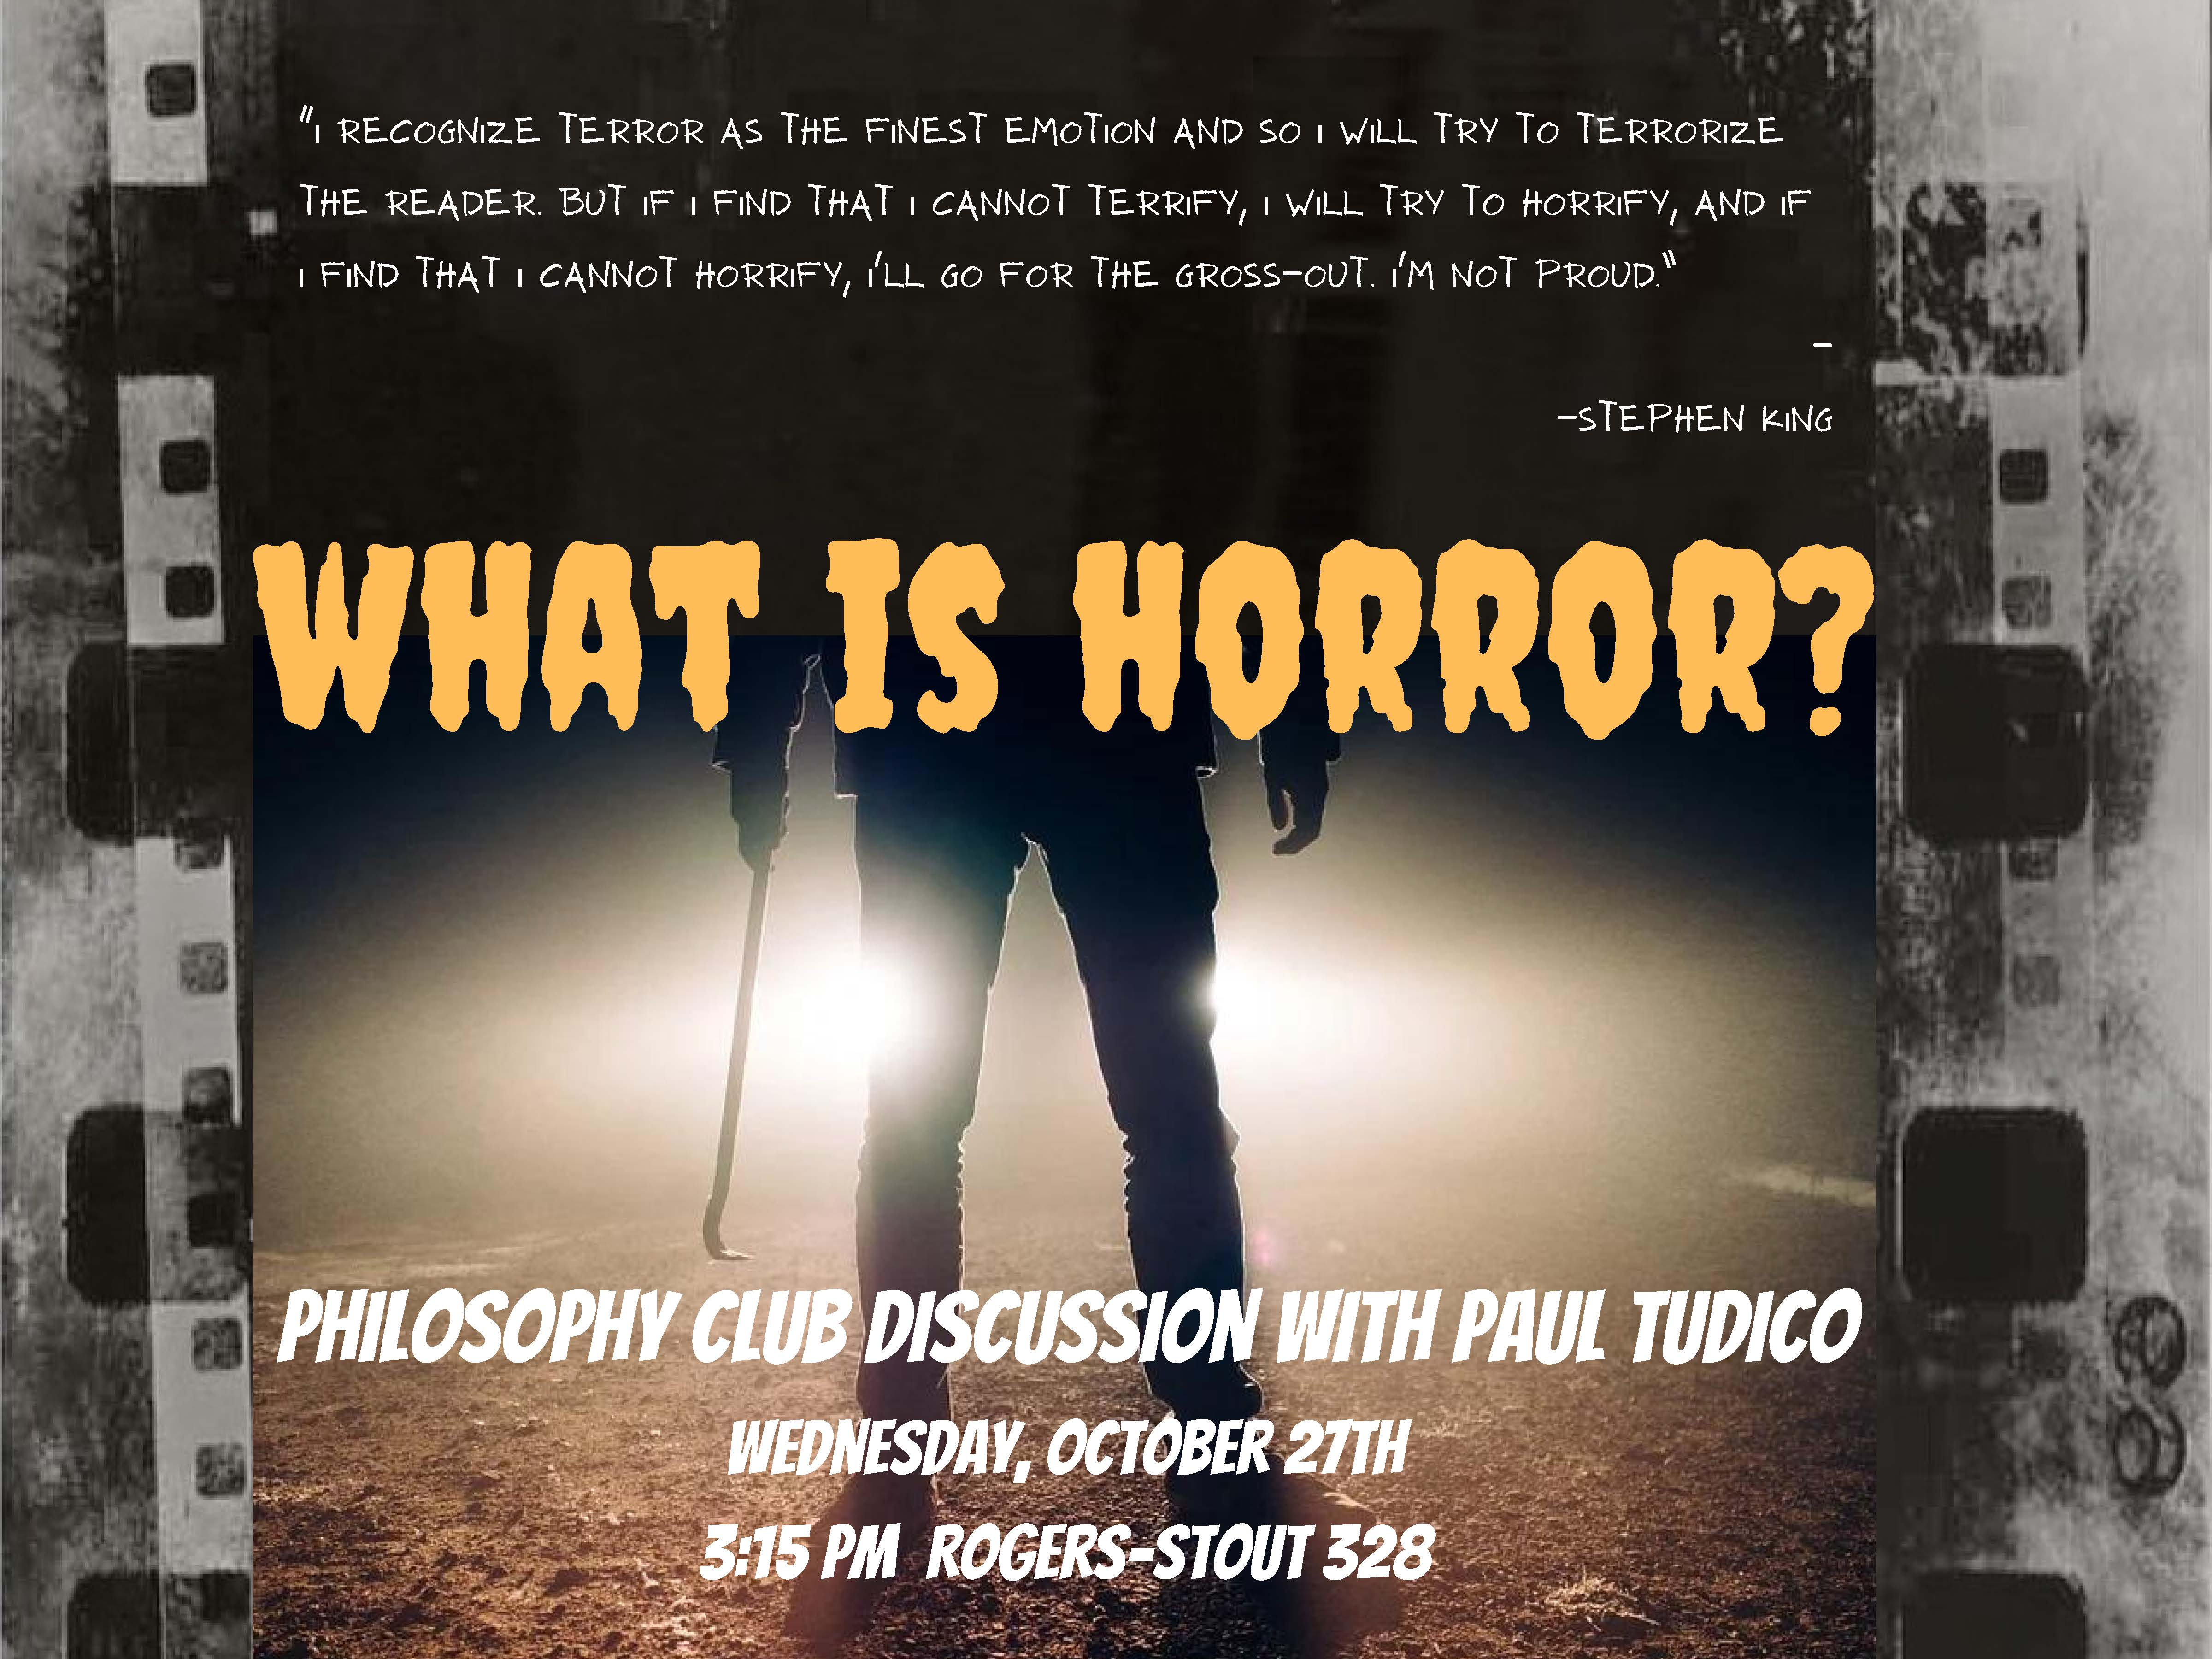 Philosophy Club discussion What is Horror?